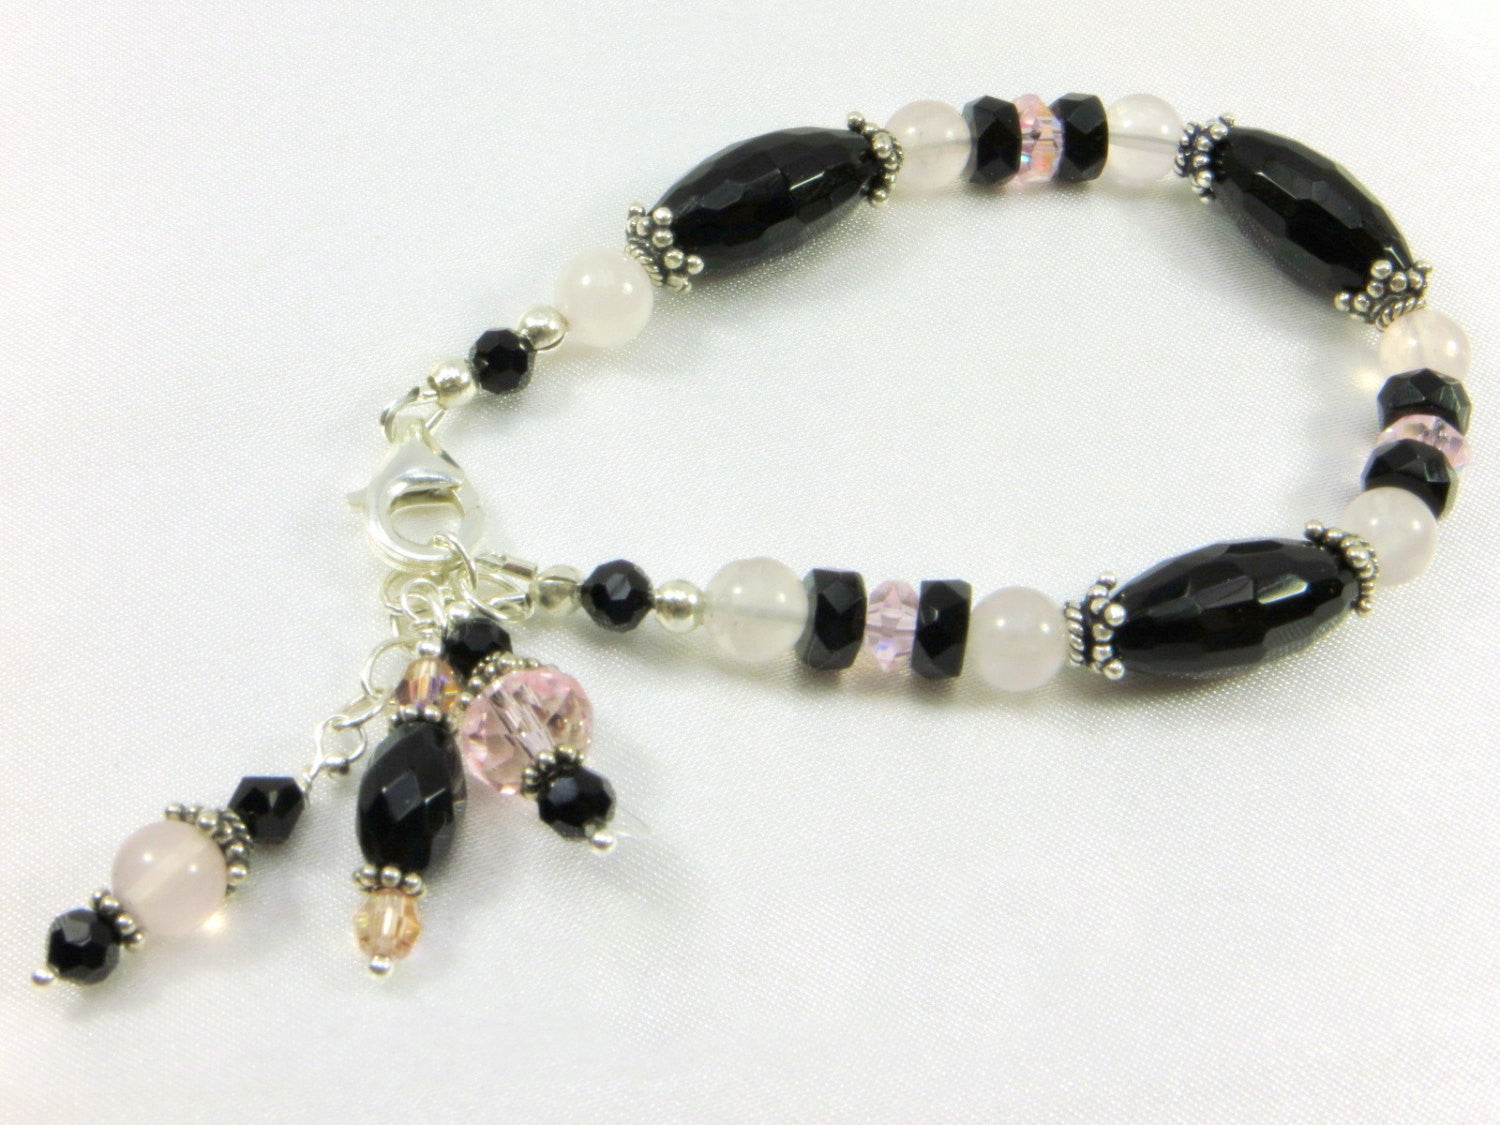 Pink Rose Quartz and Black Onyx Semiprecious Stone Bracelet on Sterling Silver - Odyssey Creations